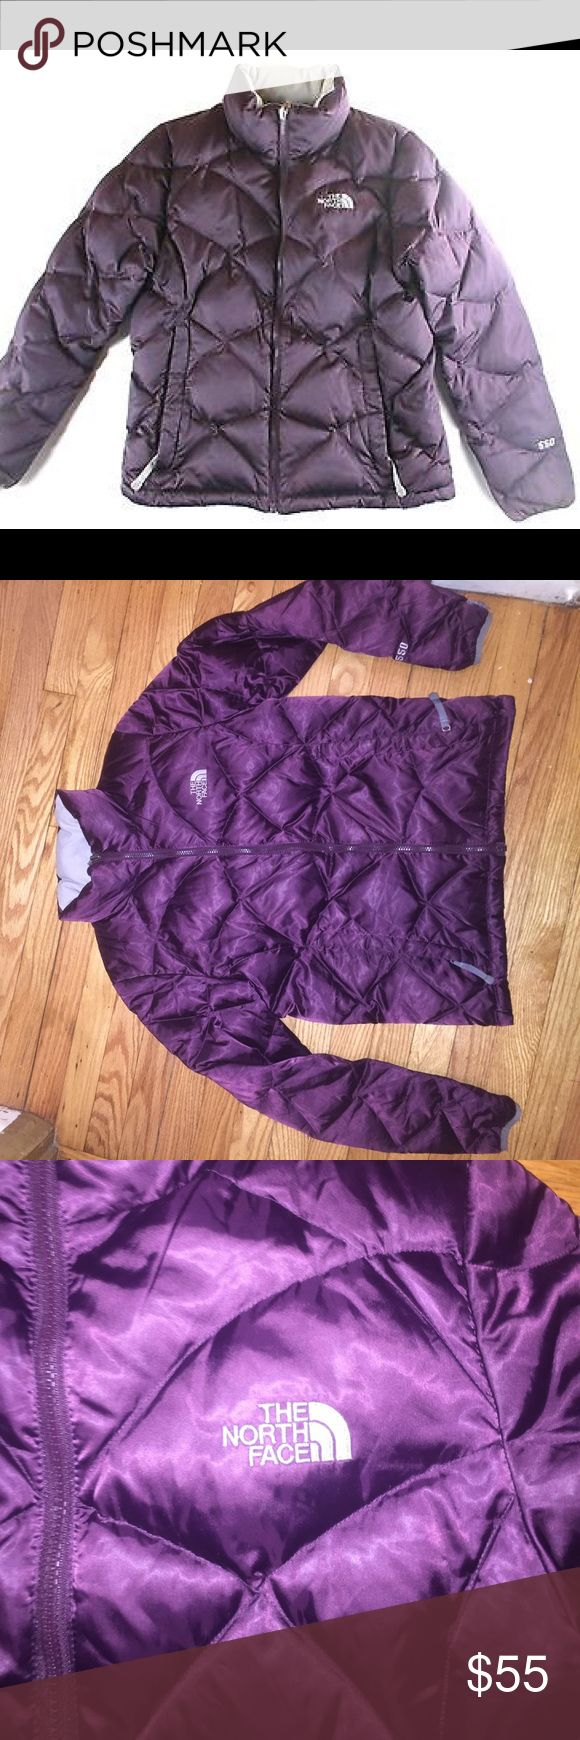 North face 550 goose feather coat Size medium, overall good condition. Minor pilling on the bottom of the sleeves hence the price. More of a deep purple, wine-like color. The colors make it look more purple. Make me an offer! The North Face Jackets & Coats